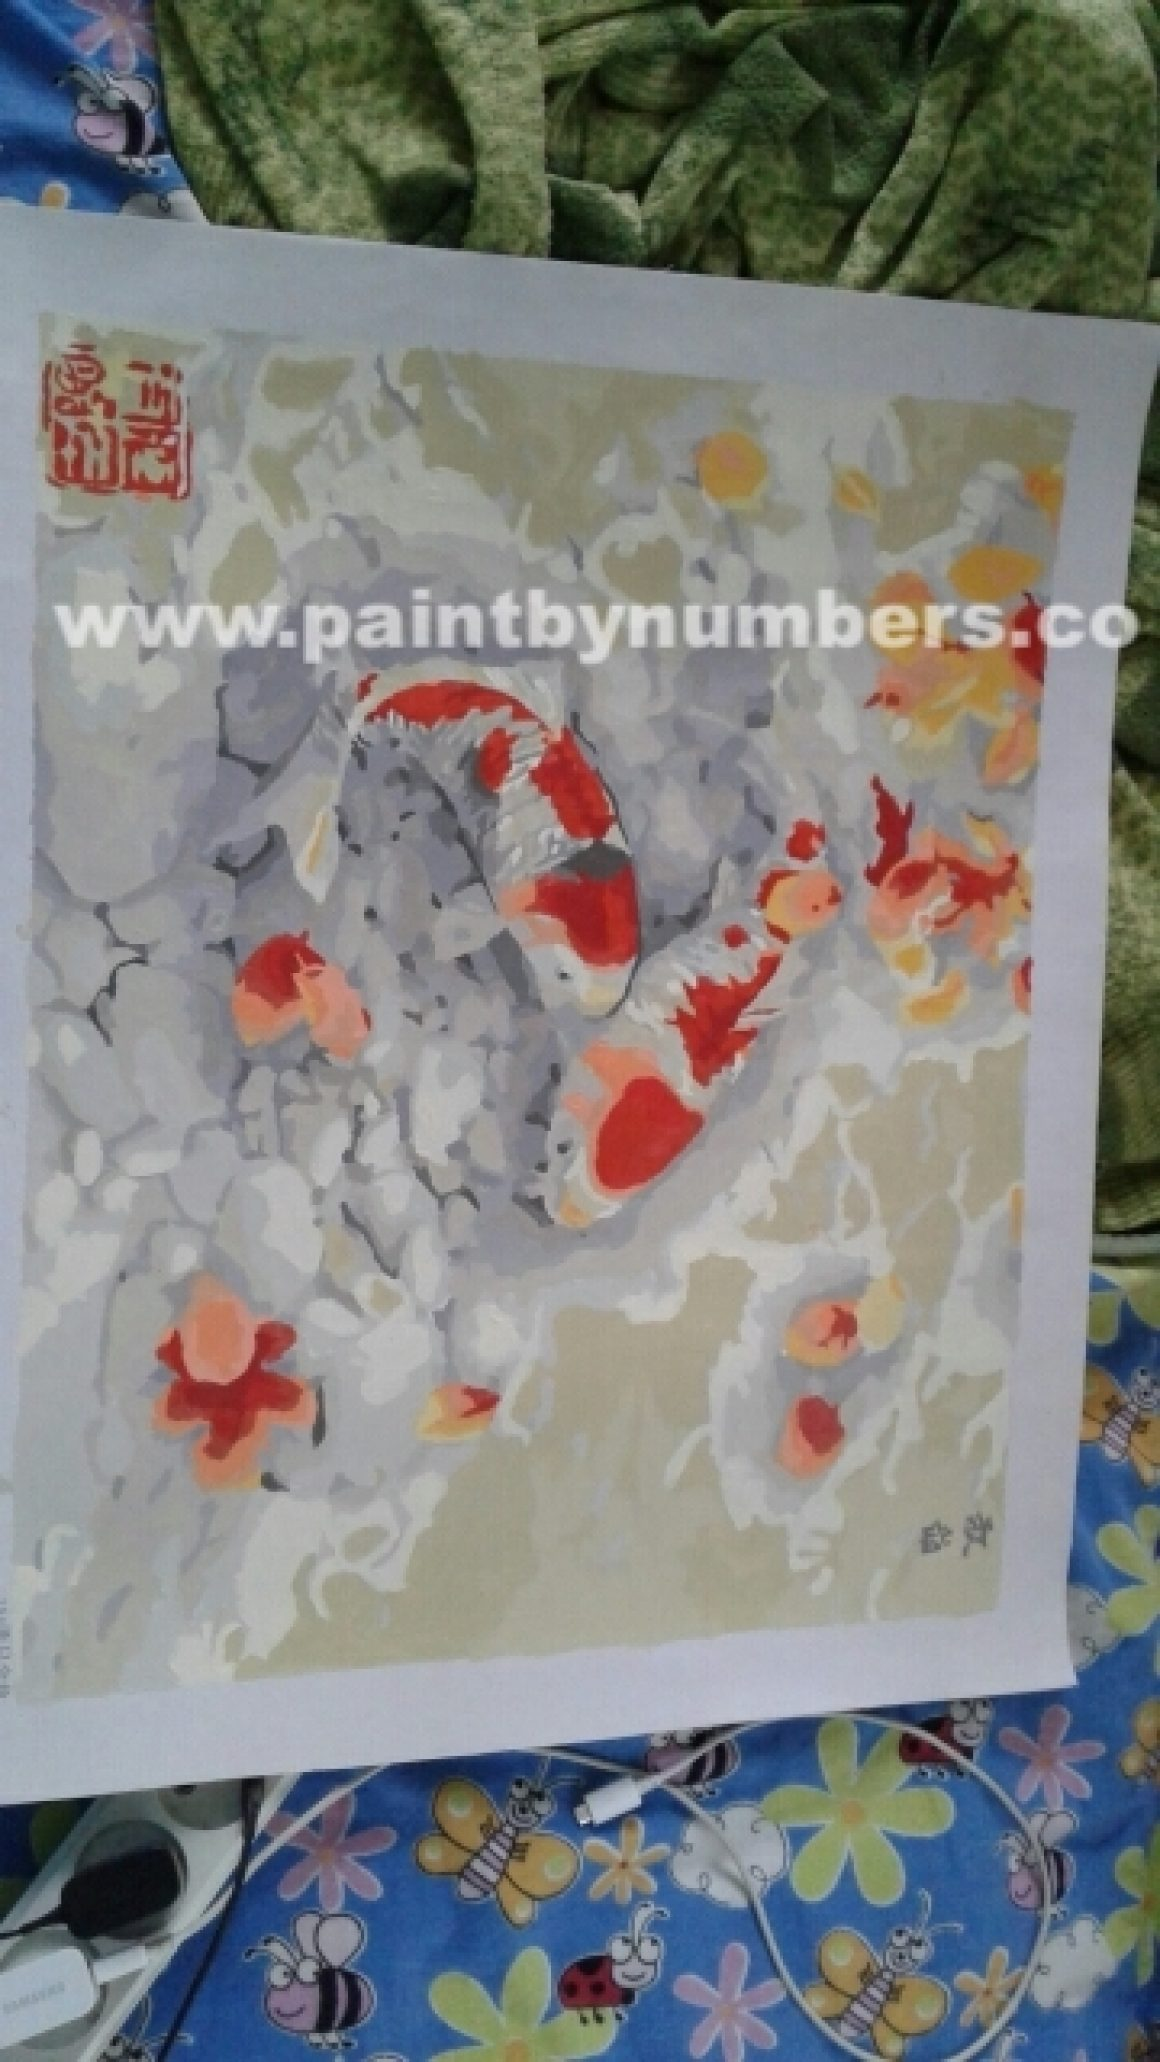 Two koi fish in a rock pond01